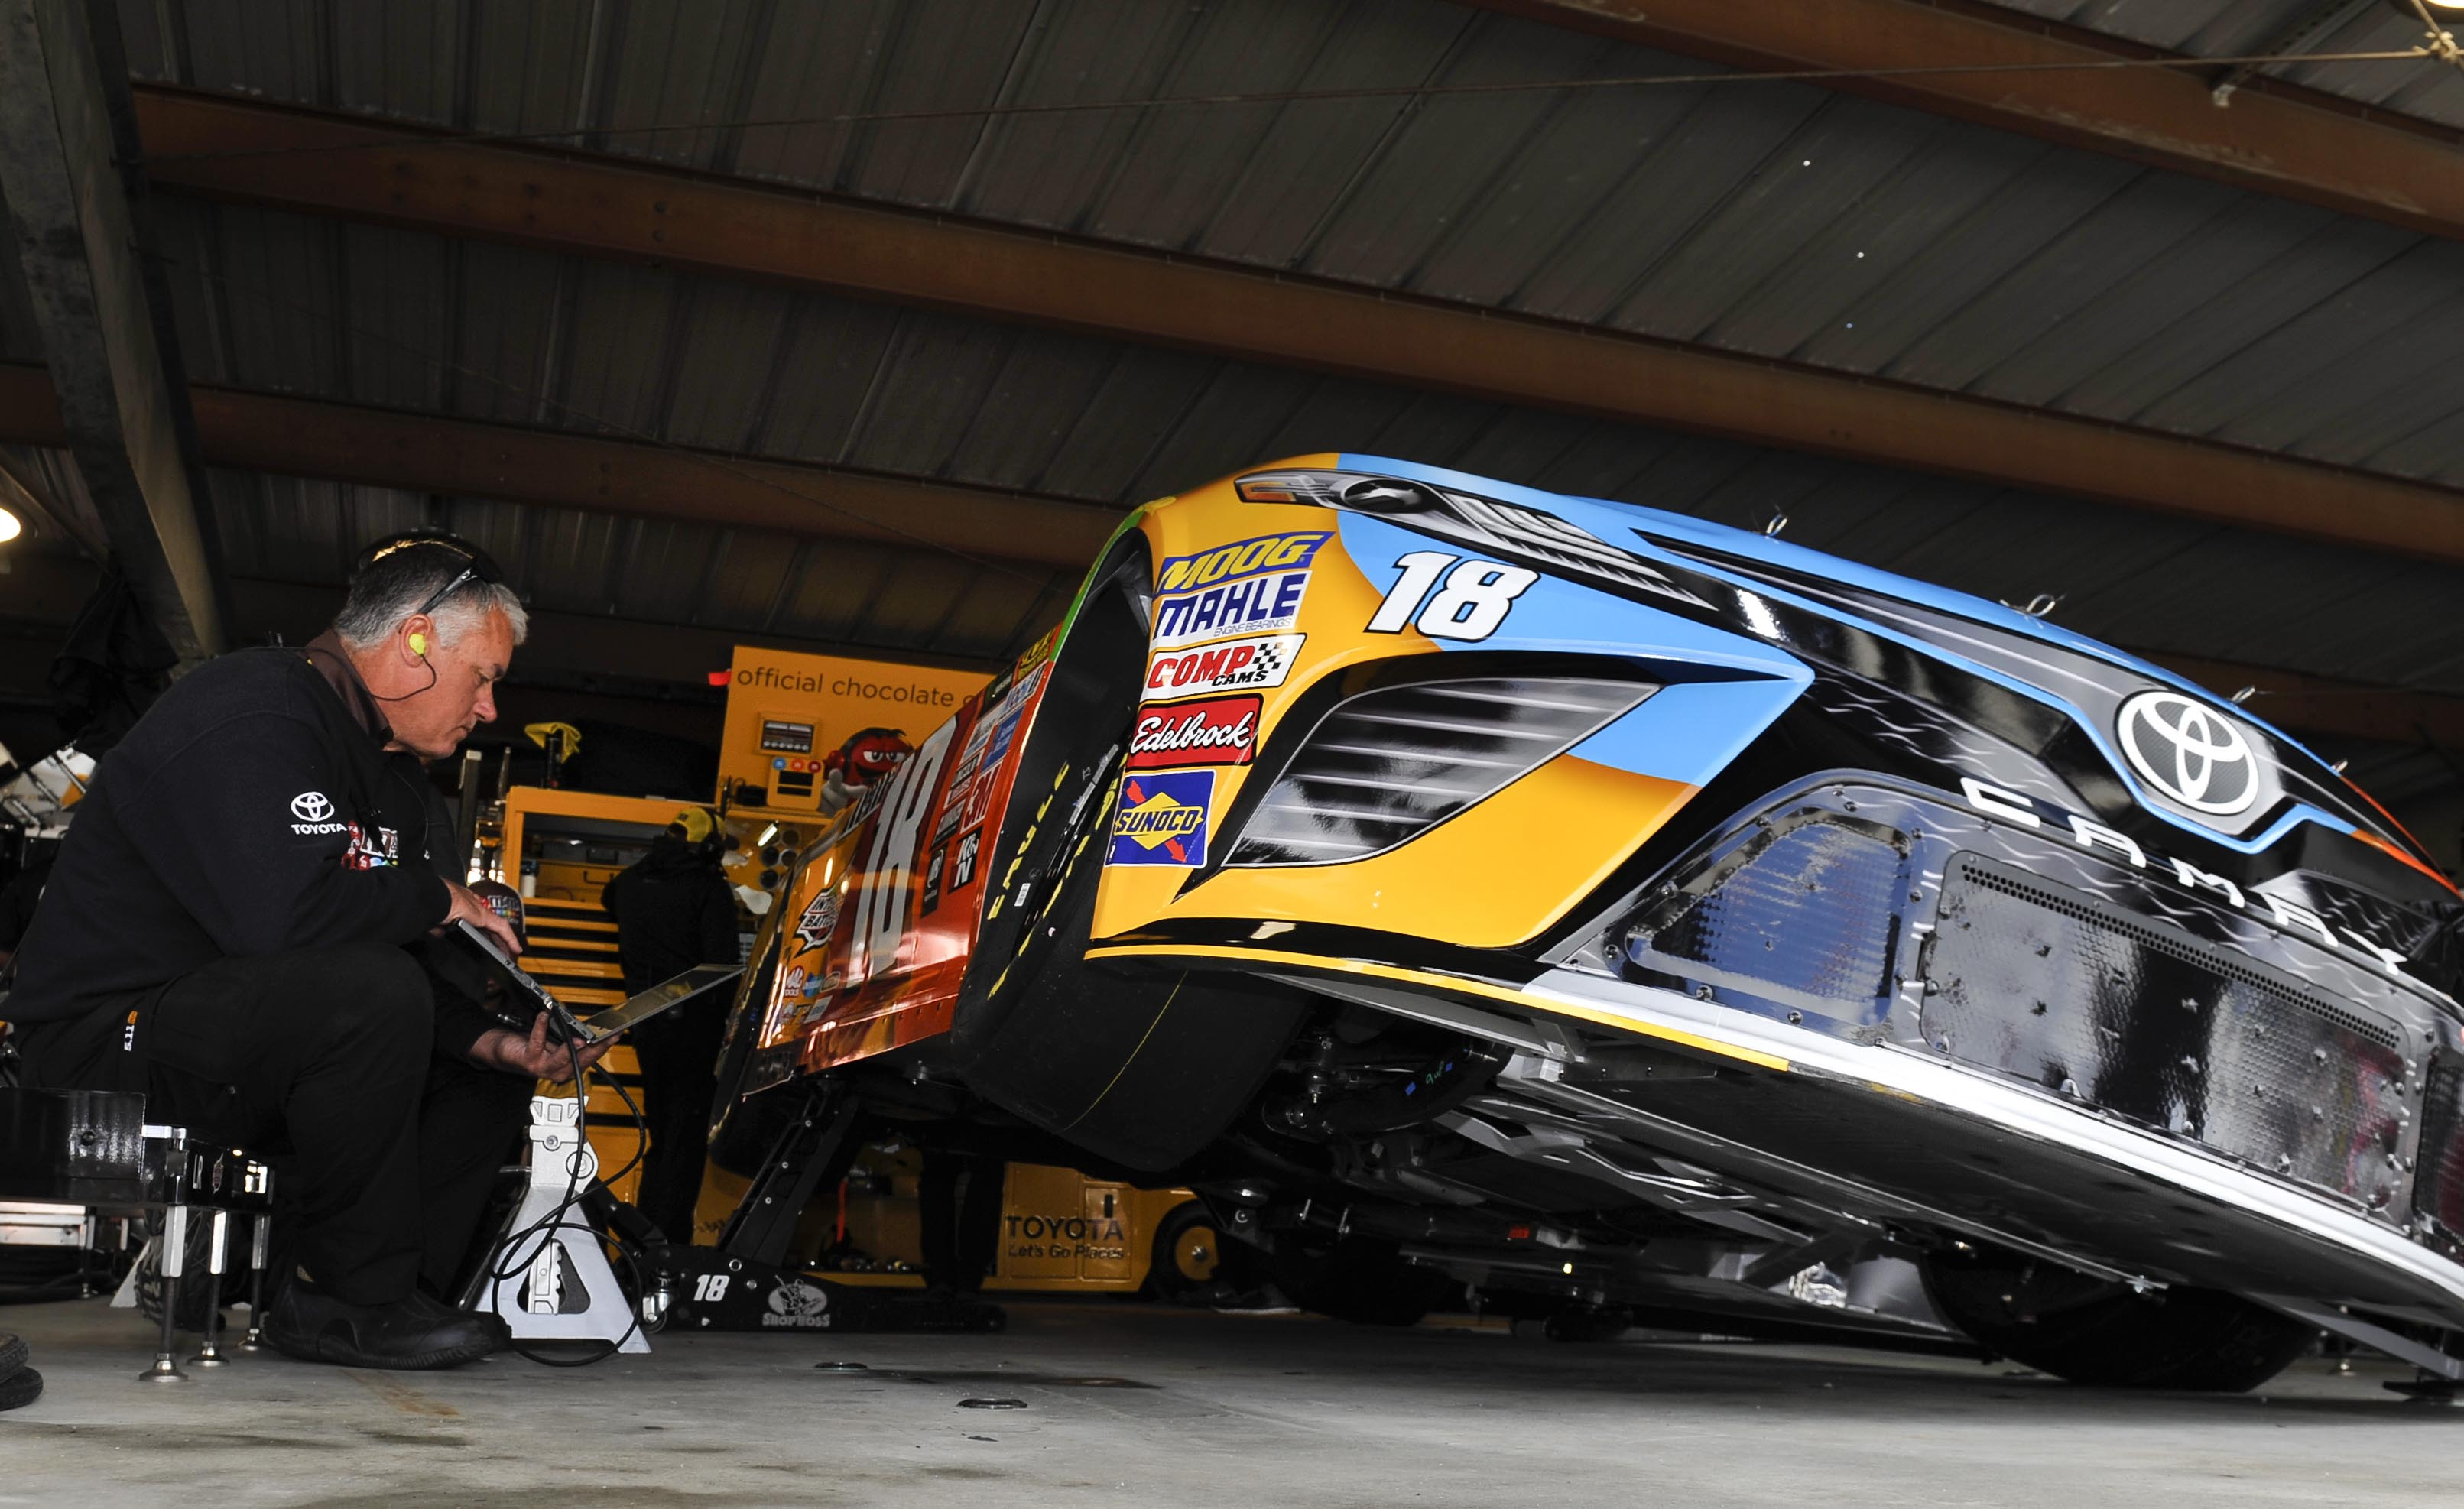 Mar 31, 2017; Martinsville, VA, USA; A crew member for NASCAR Cup Series driver Kyle Busch (18) checks a tire reading during practice for the STP 500 at Martinsville Speedway. Mandatory Credit: Michael Shroyer-USA TODAY Sports